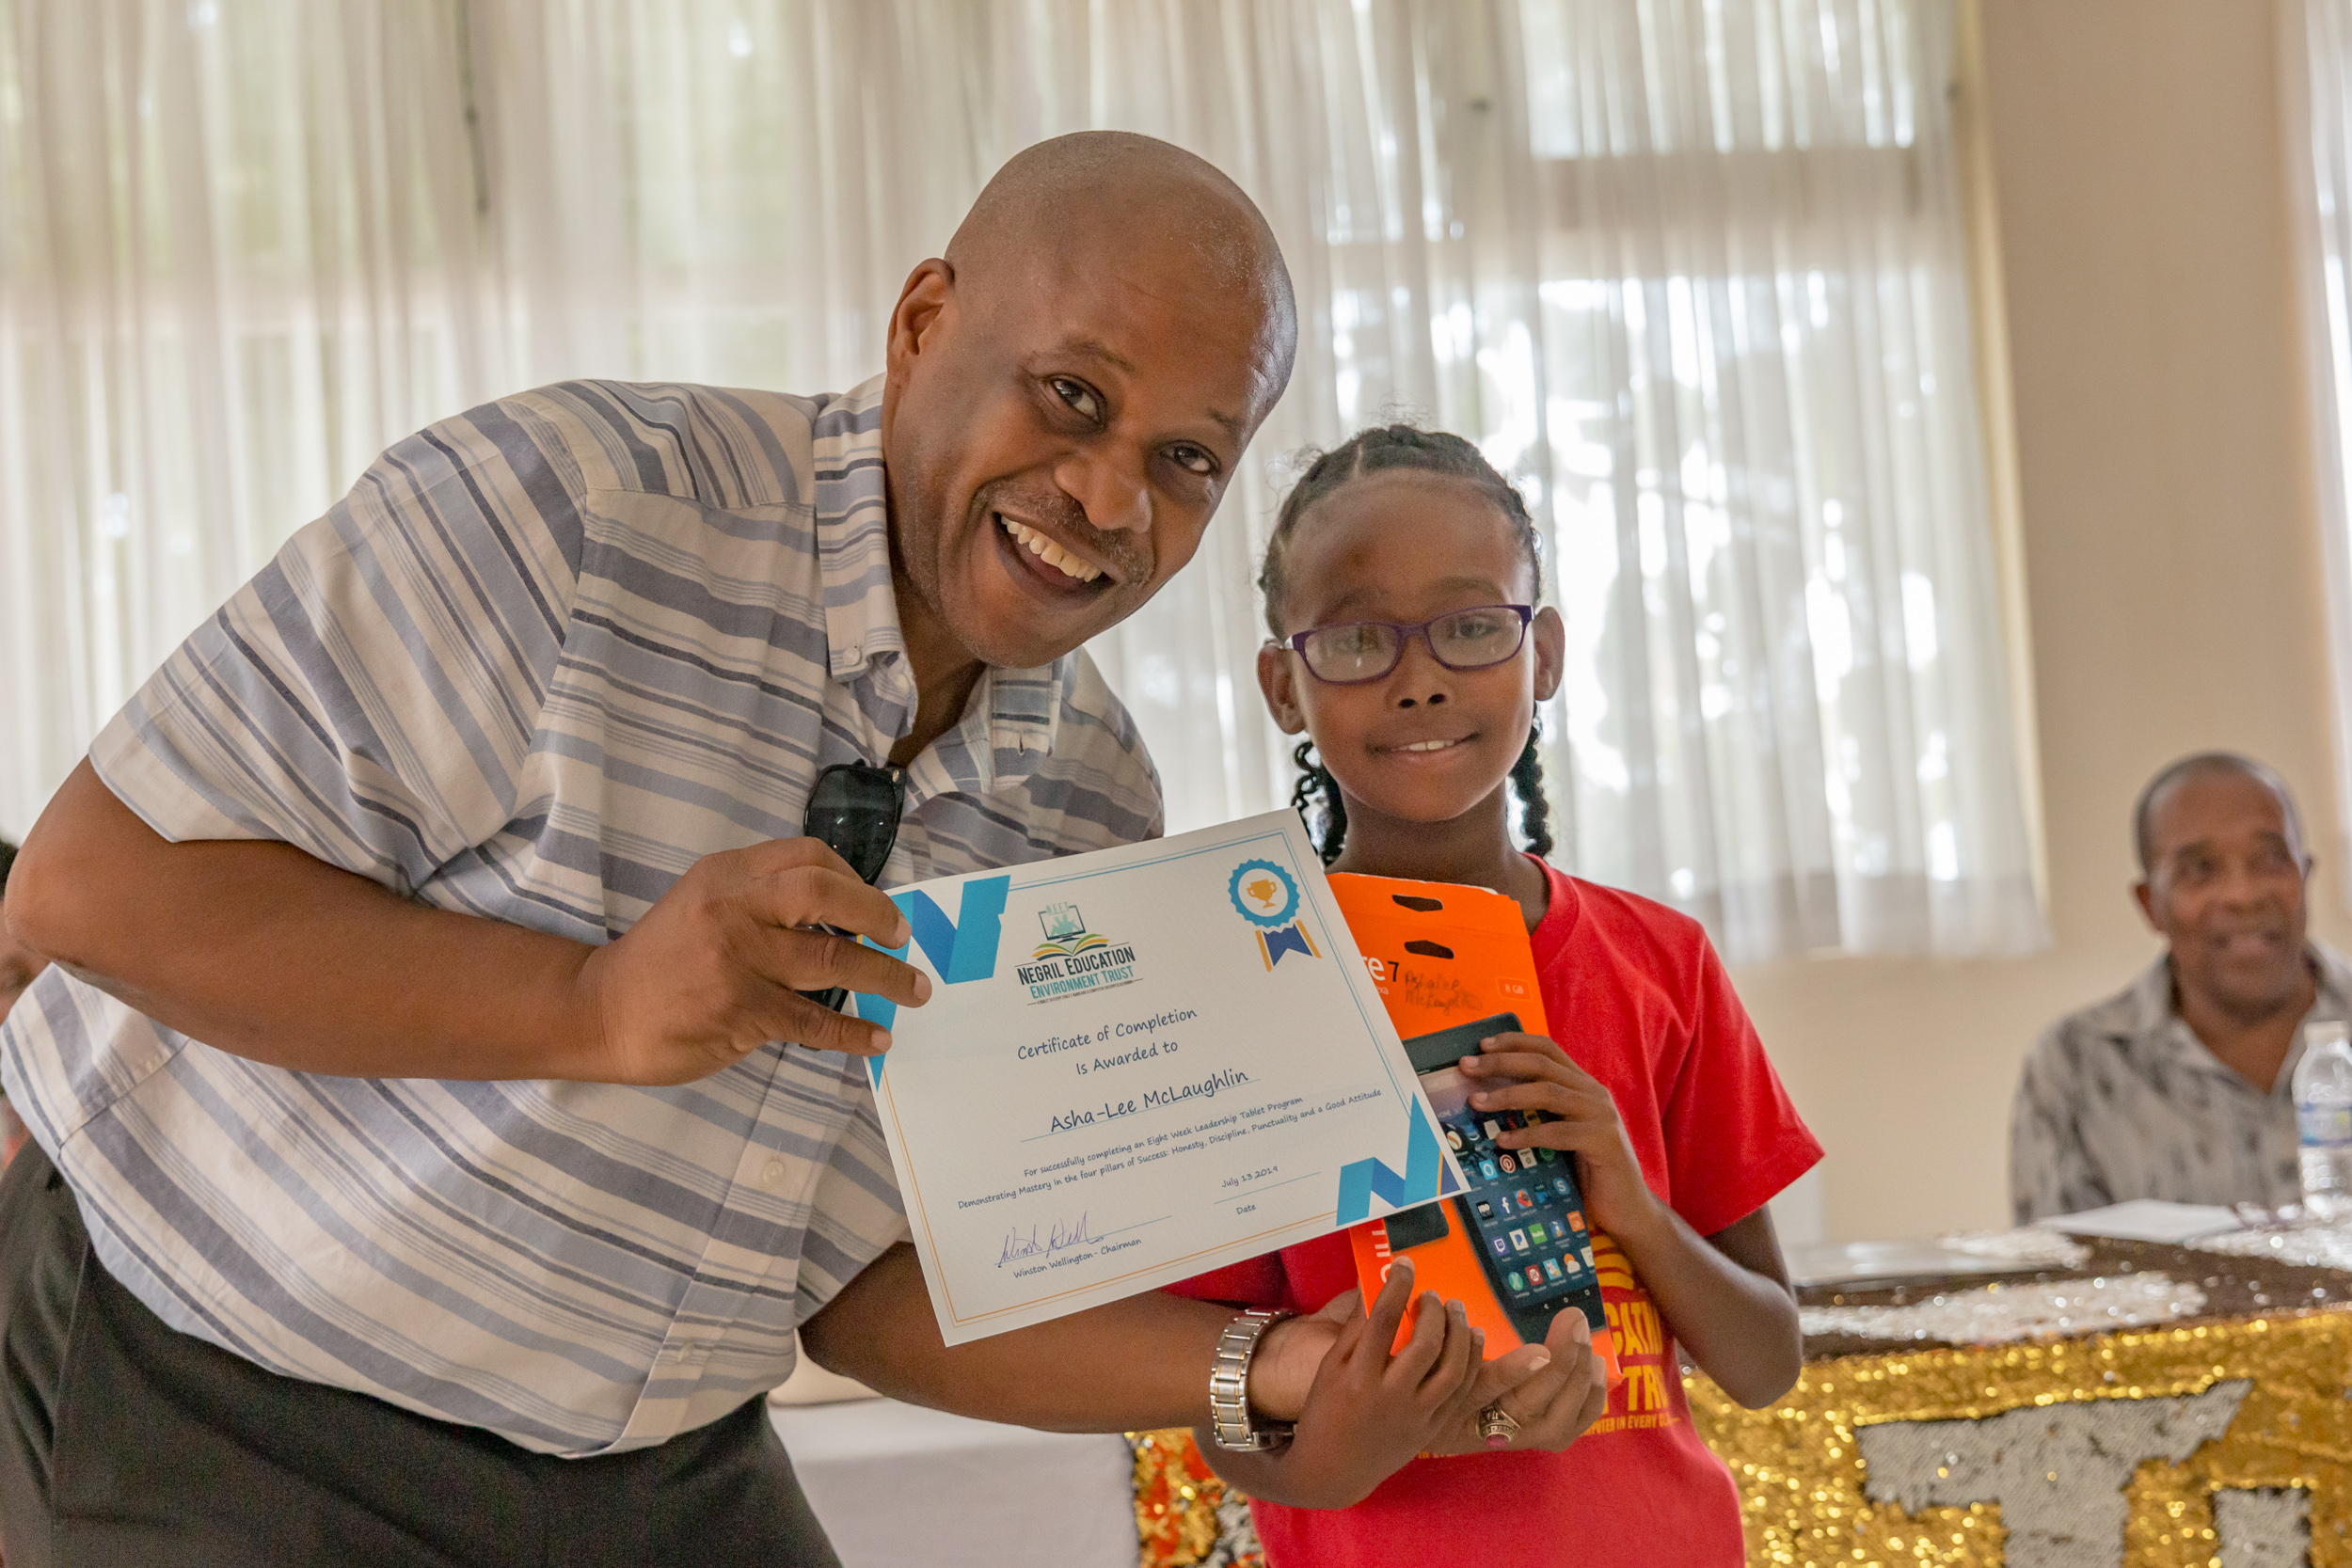 Student Receives certificate and Tablet